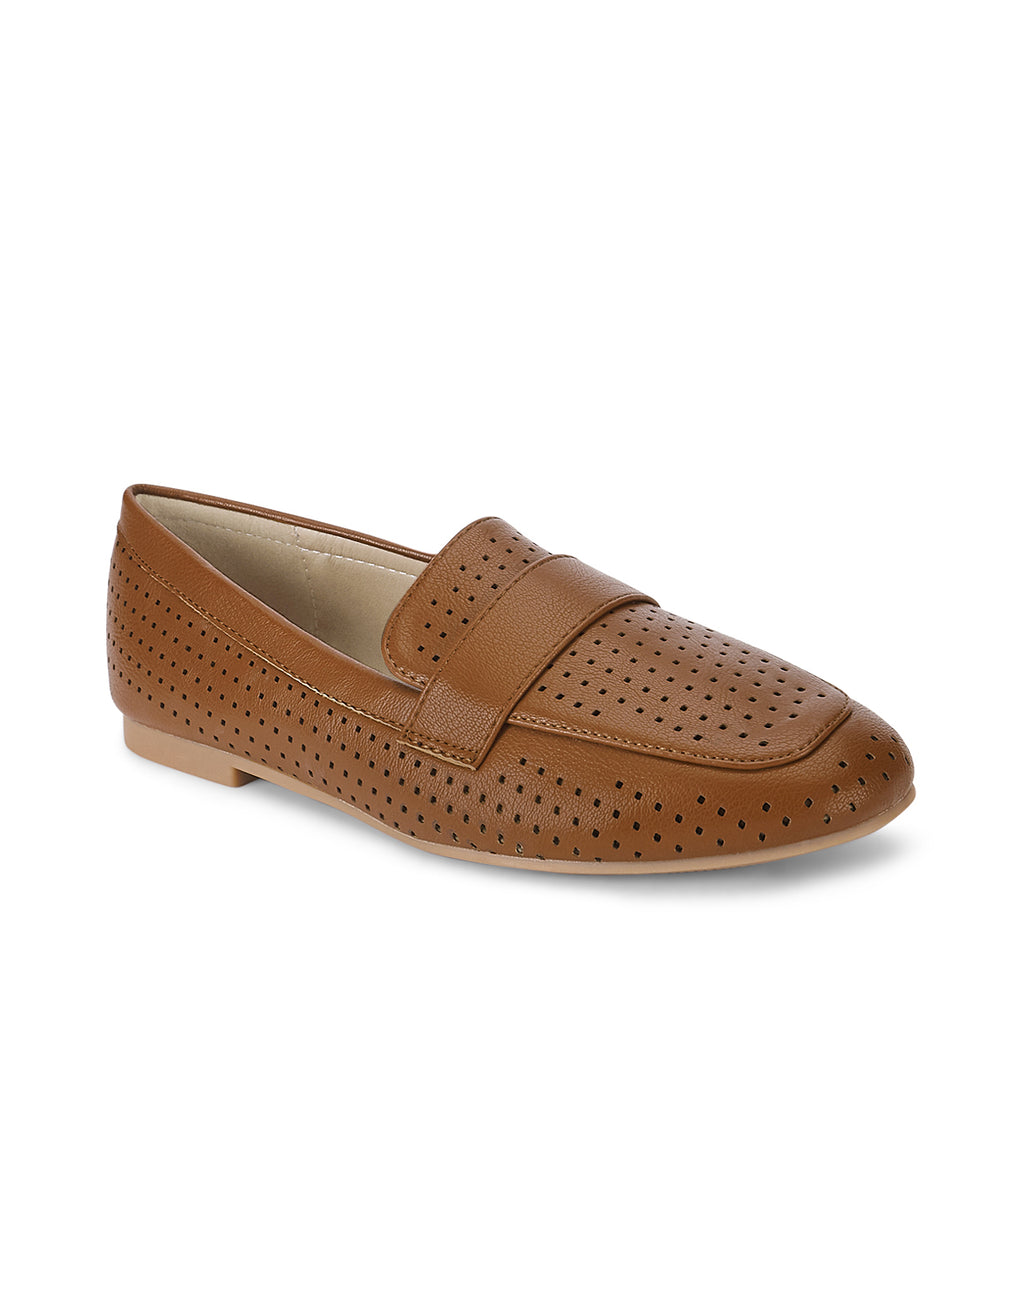 Claire Sleek Tan Loafers